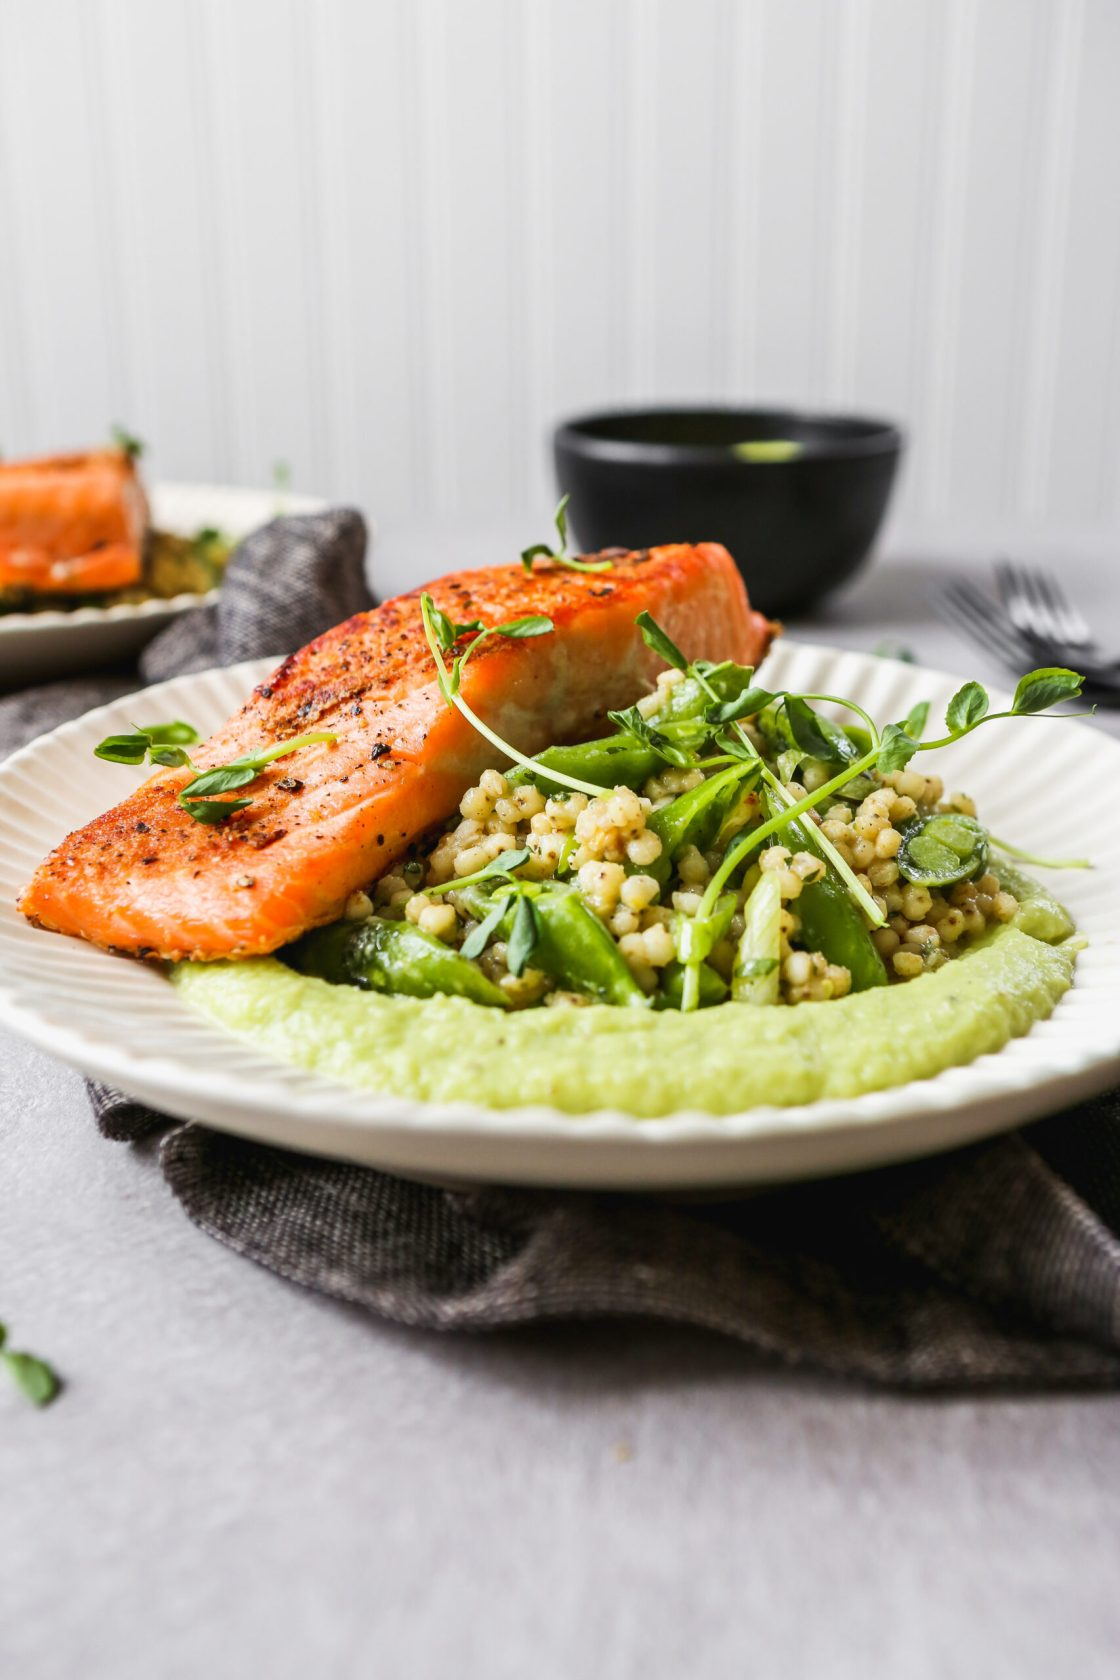 Pan seared salmon on white plates with green sauce and grain salad, set on a gray background.